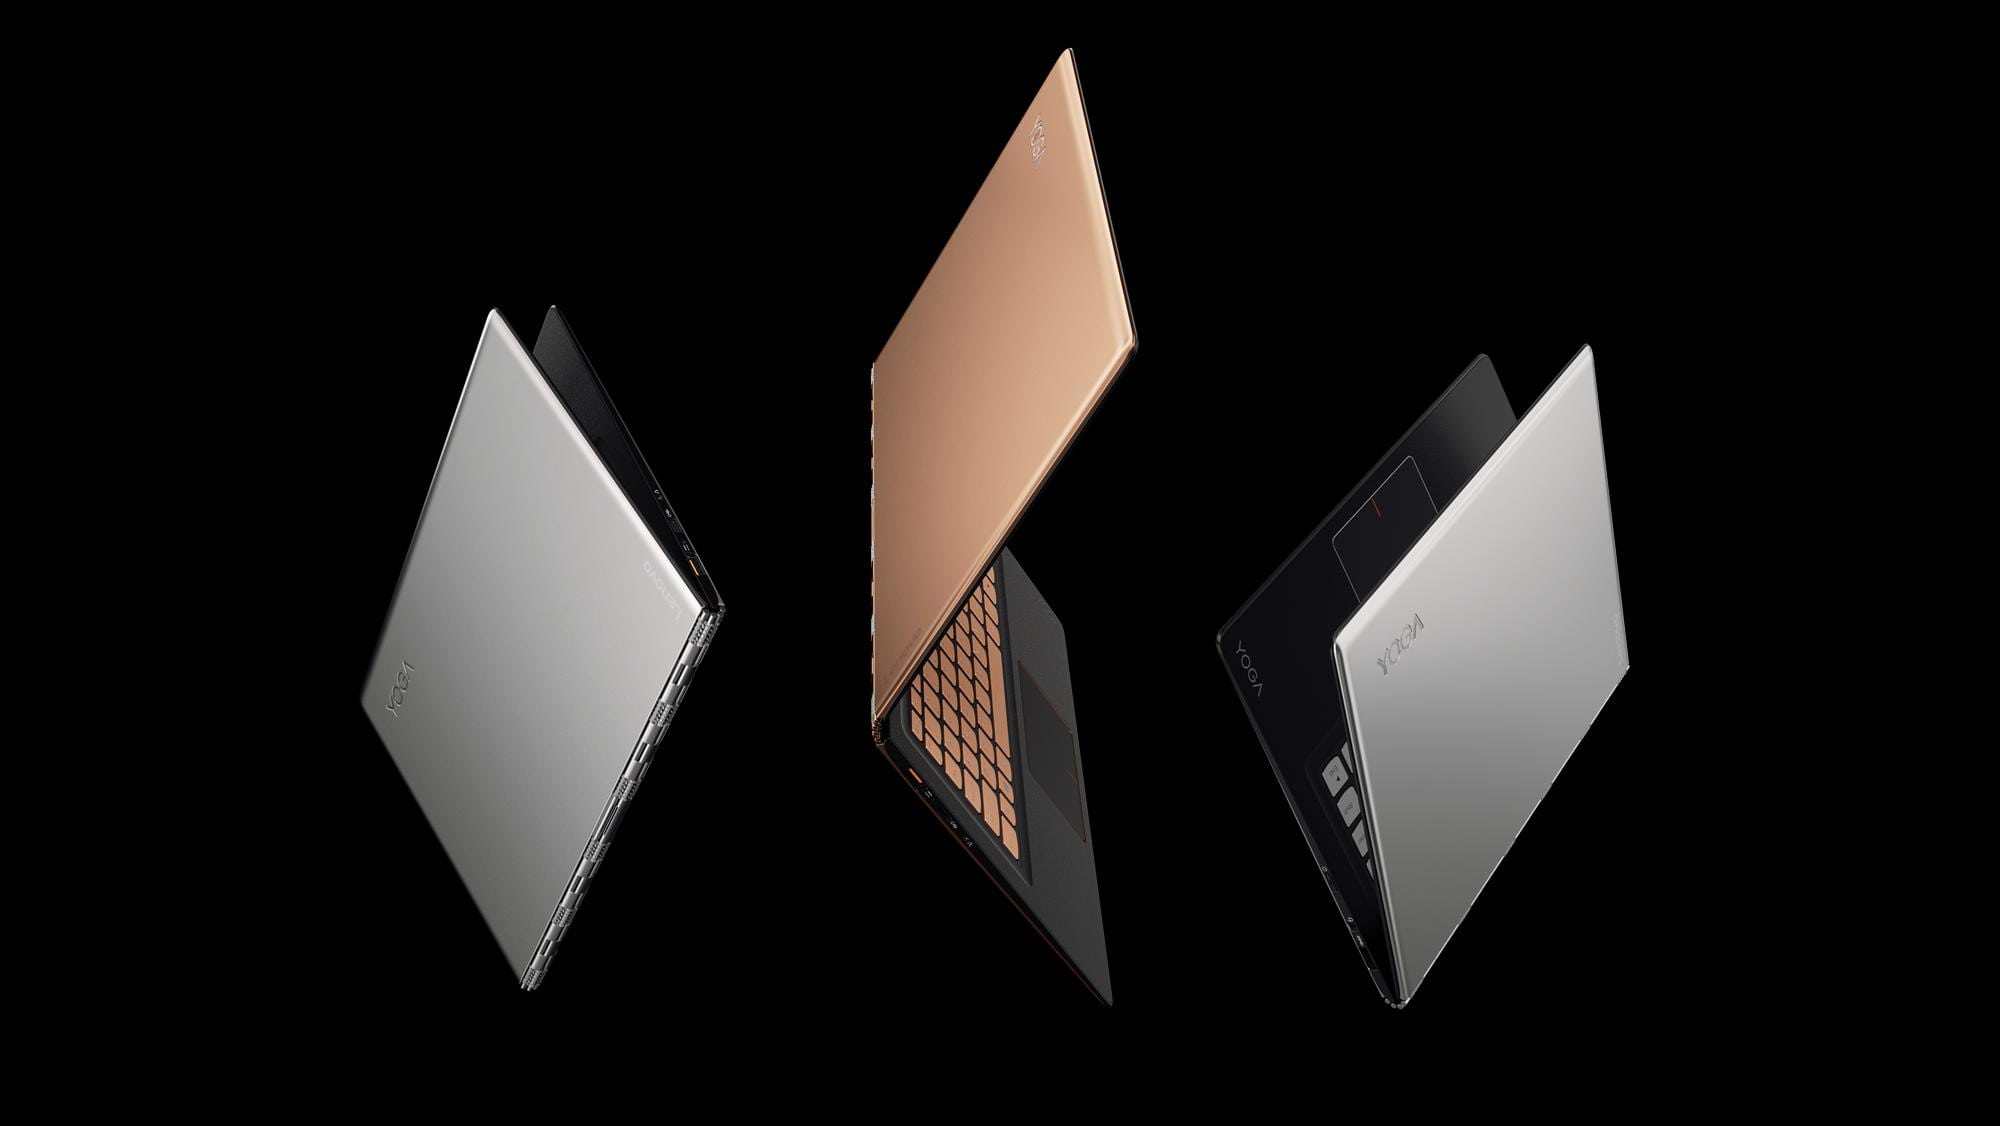 YOGA 900S_Product Family